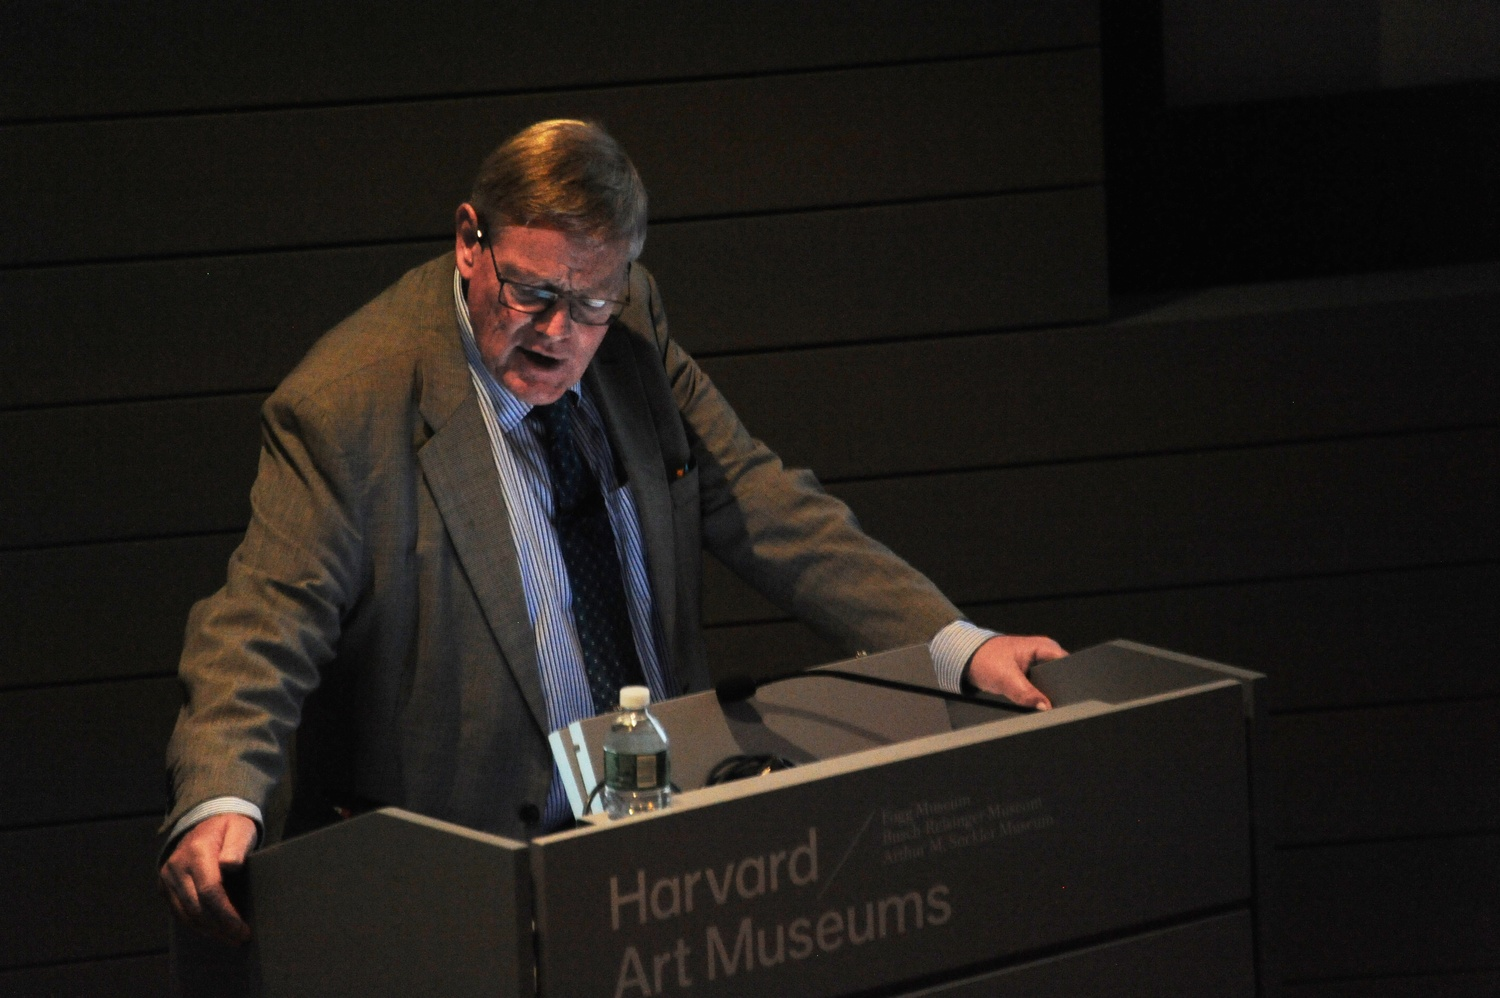 Roger Bland, former Keeper of Coins at the British Museum, speaks on Roman coin finds in Britain Thursday evening at the Harvard Art Museums.